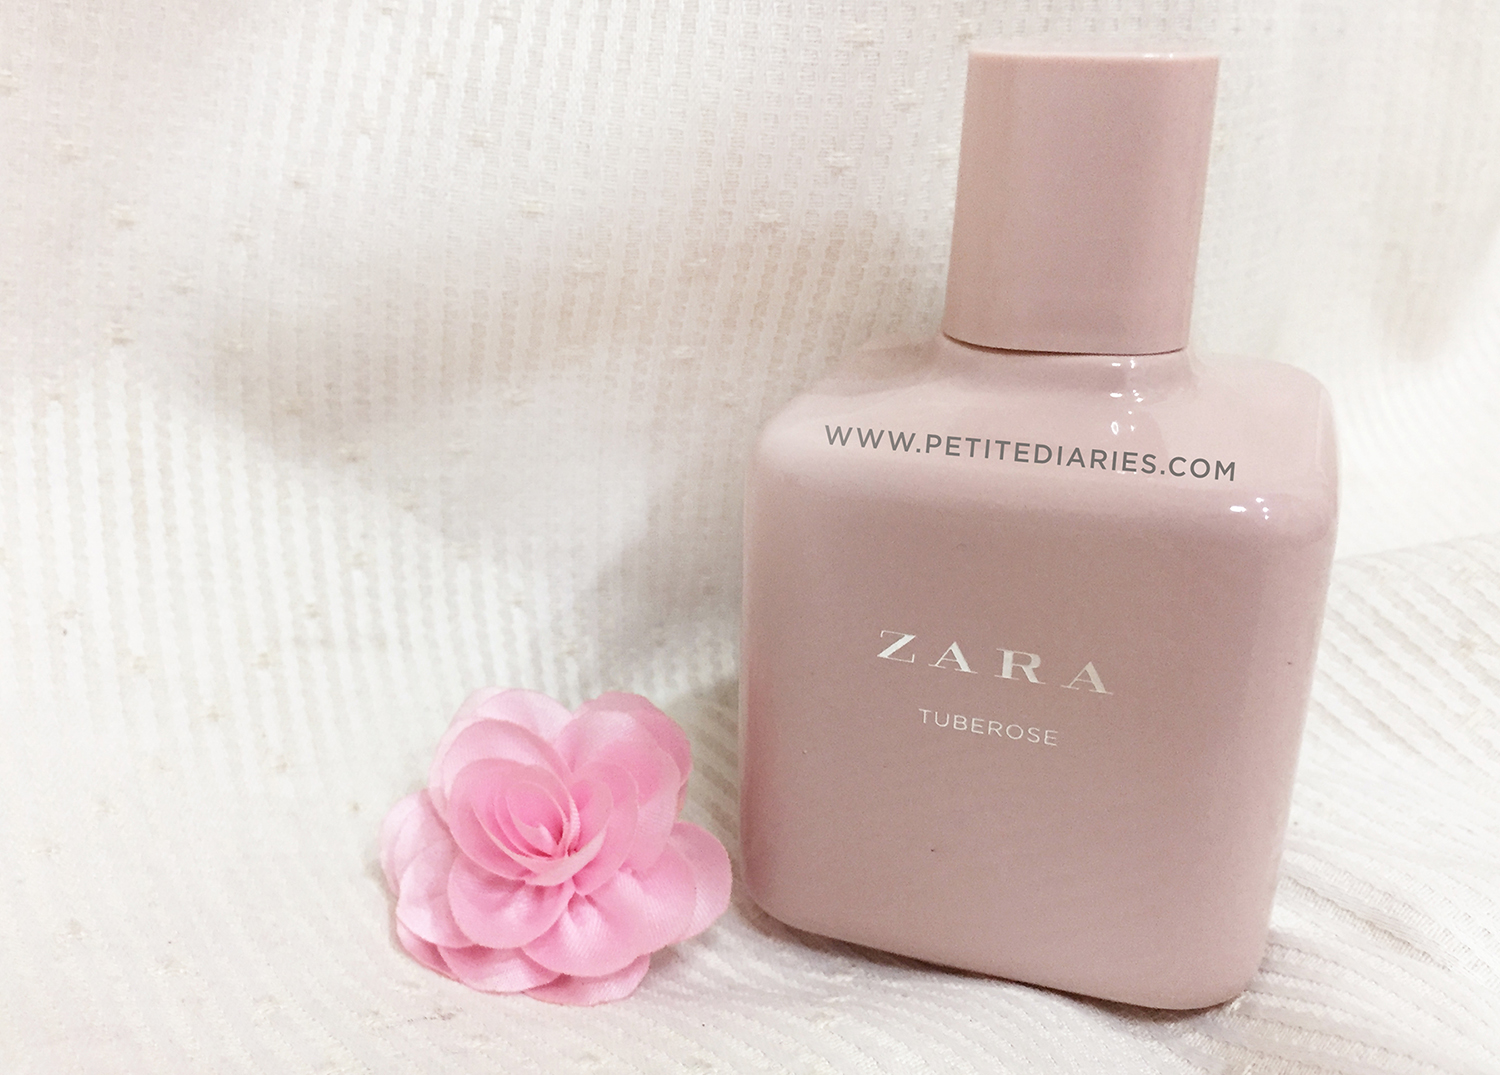 zara tuberose perfume edt review